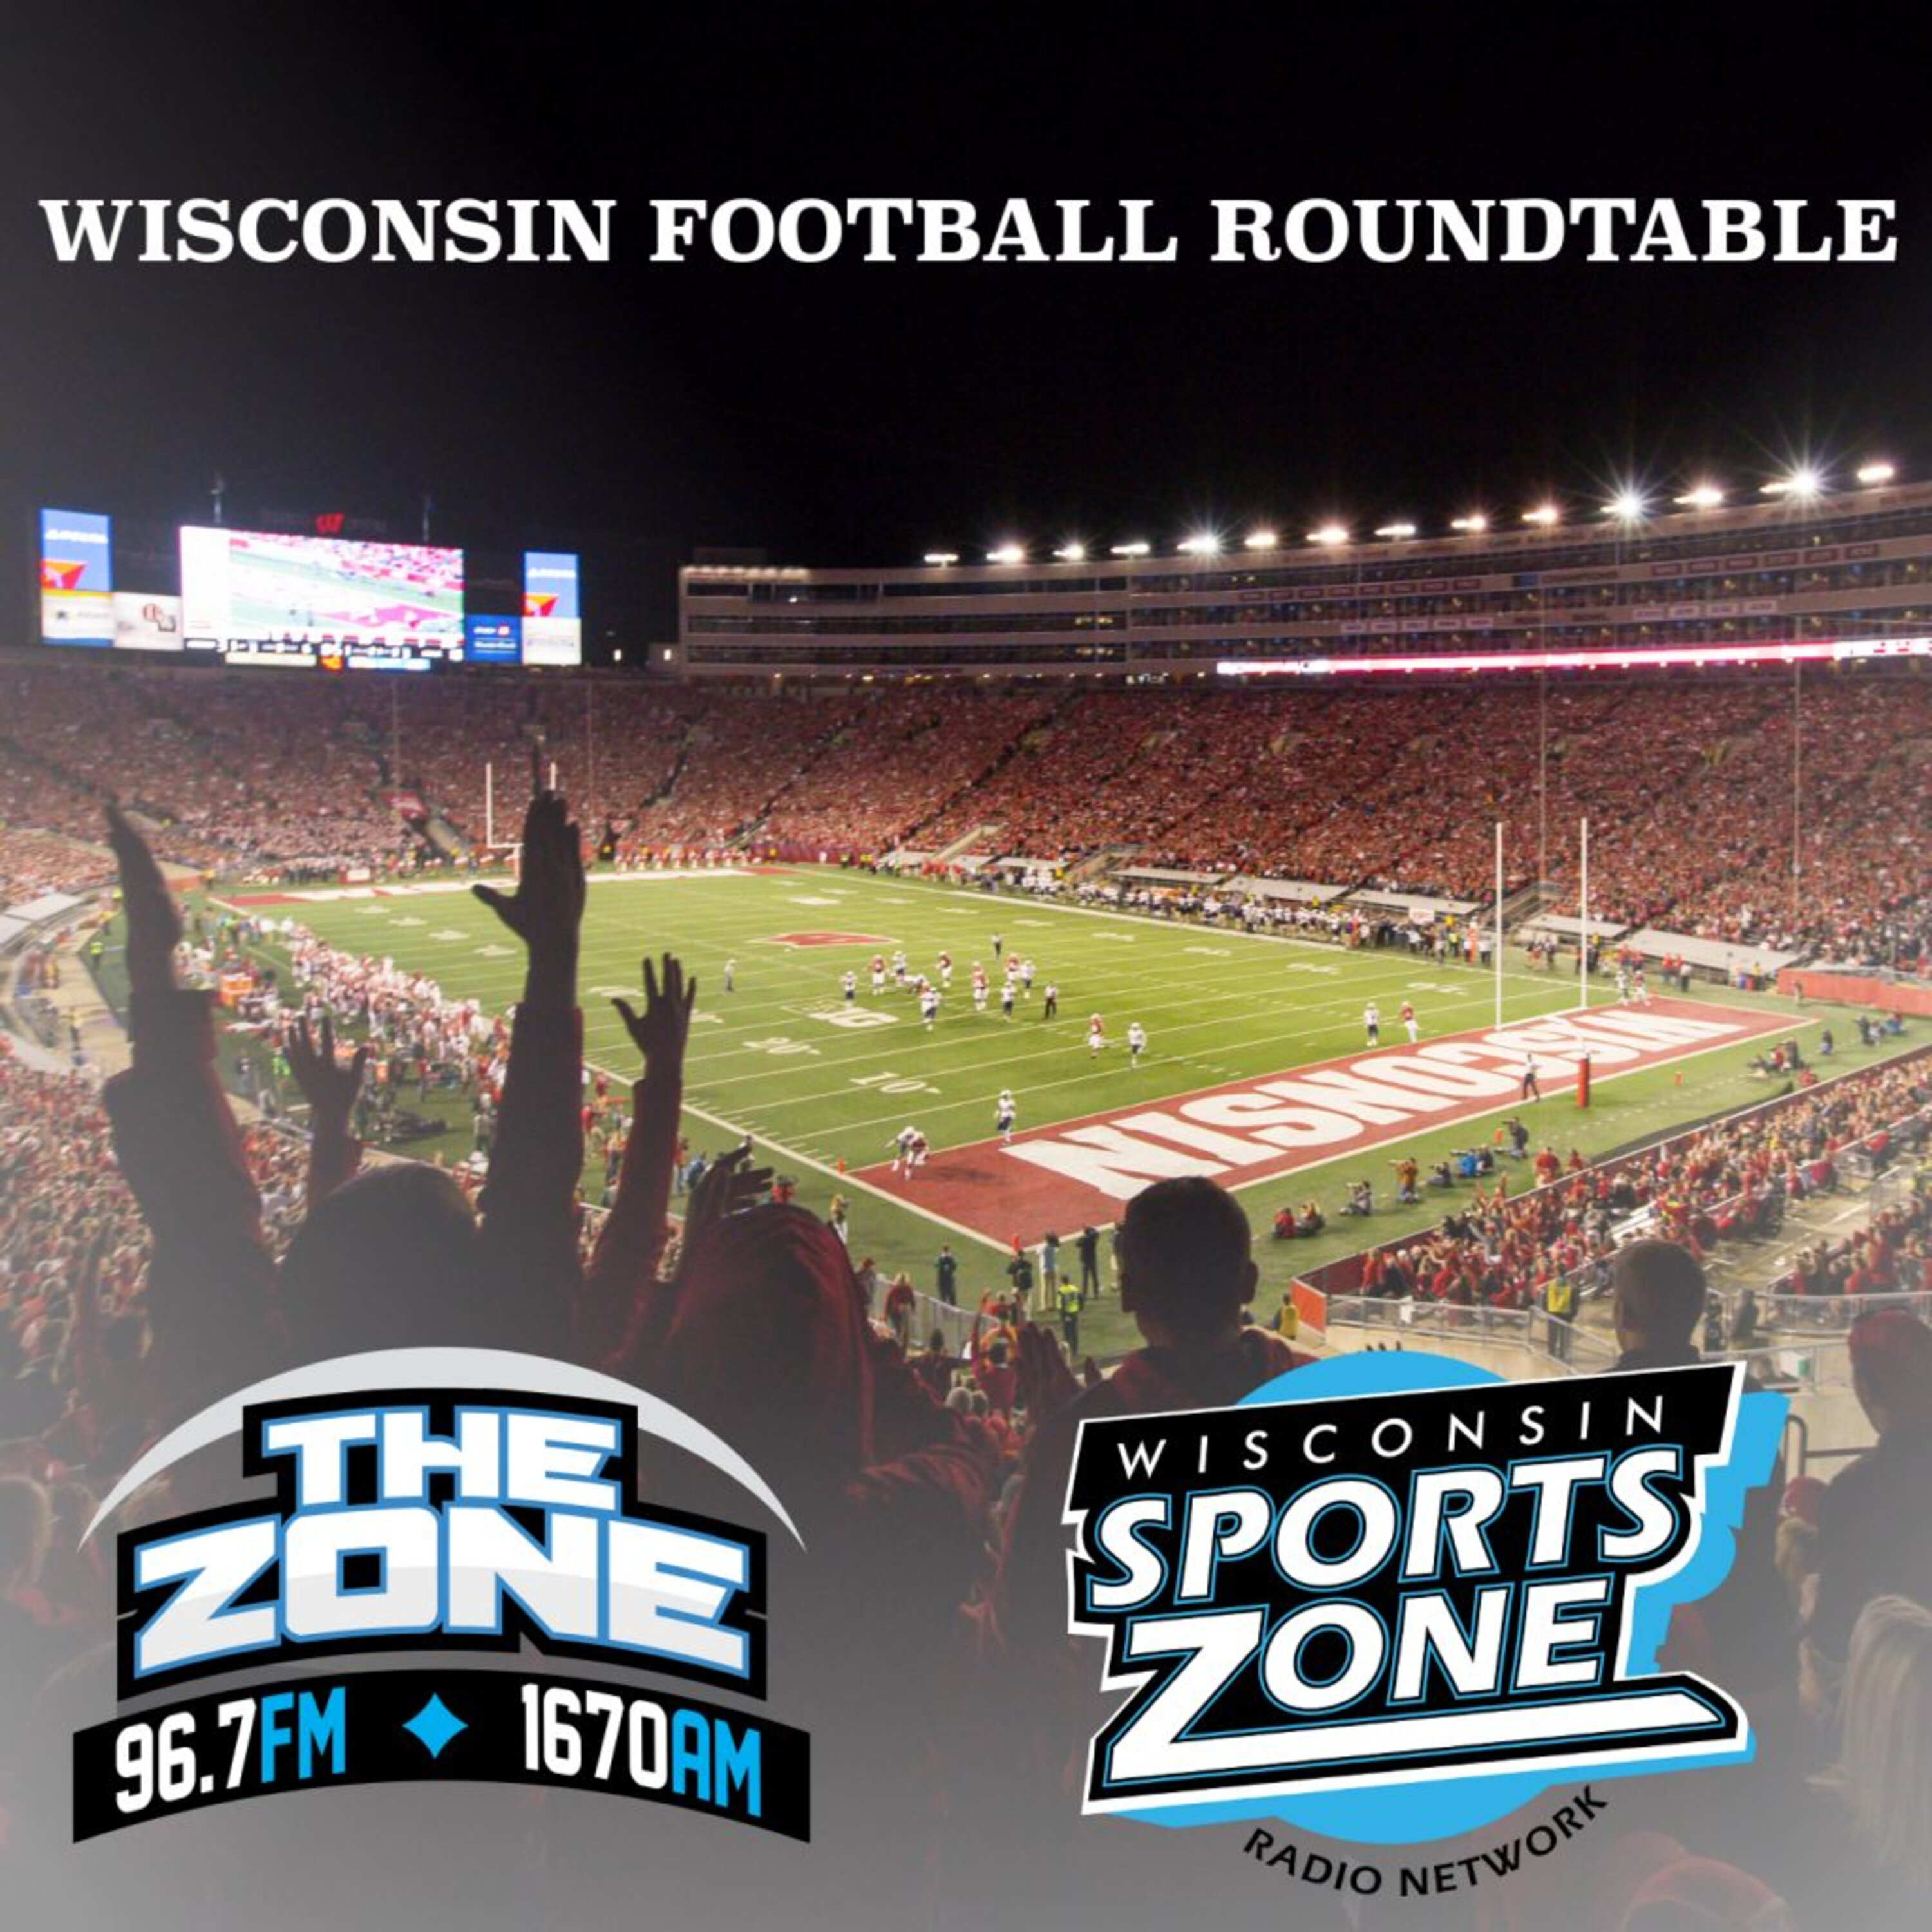 Wisconsin Football Roundtable: Sept. 19, 2019